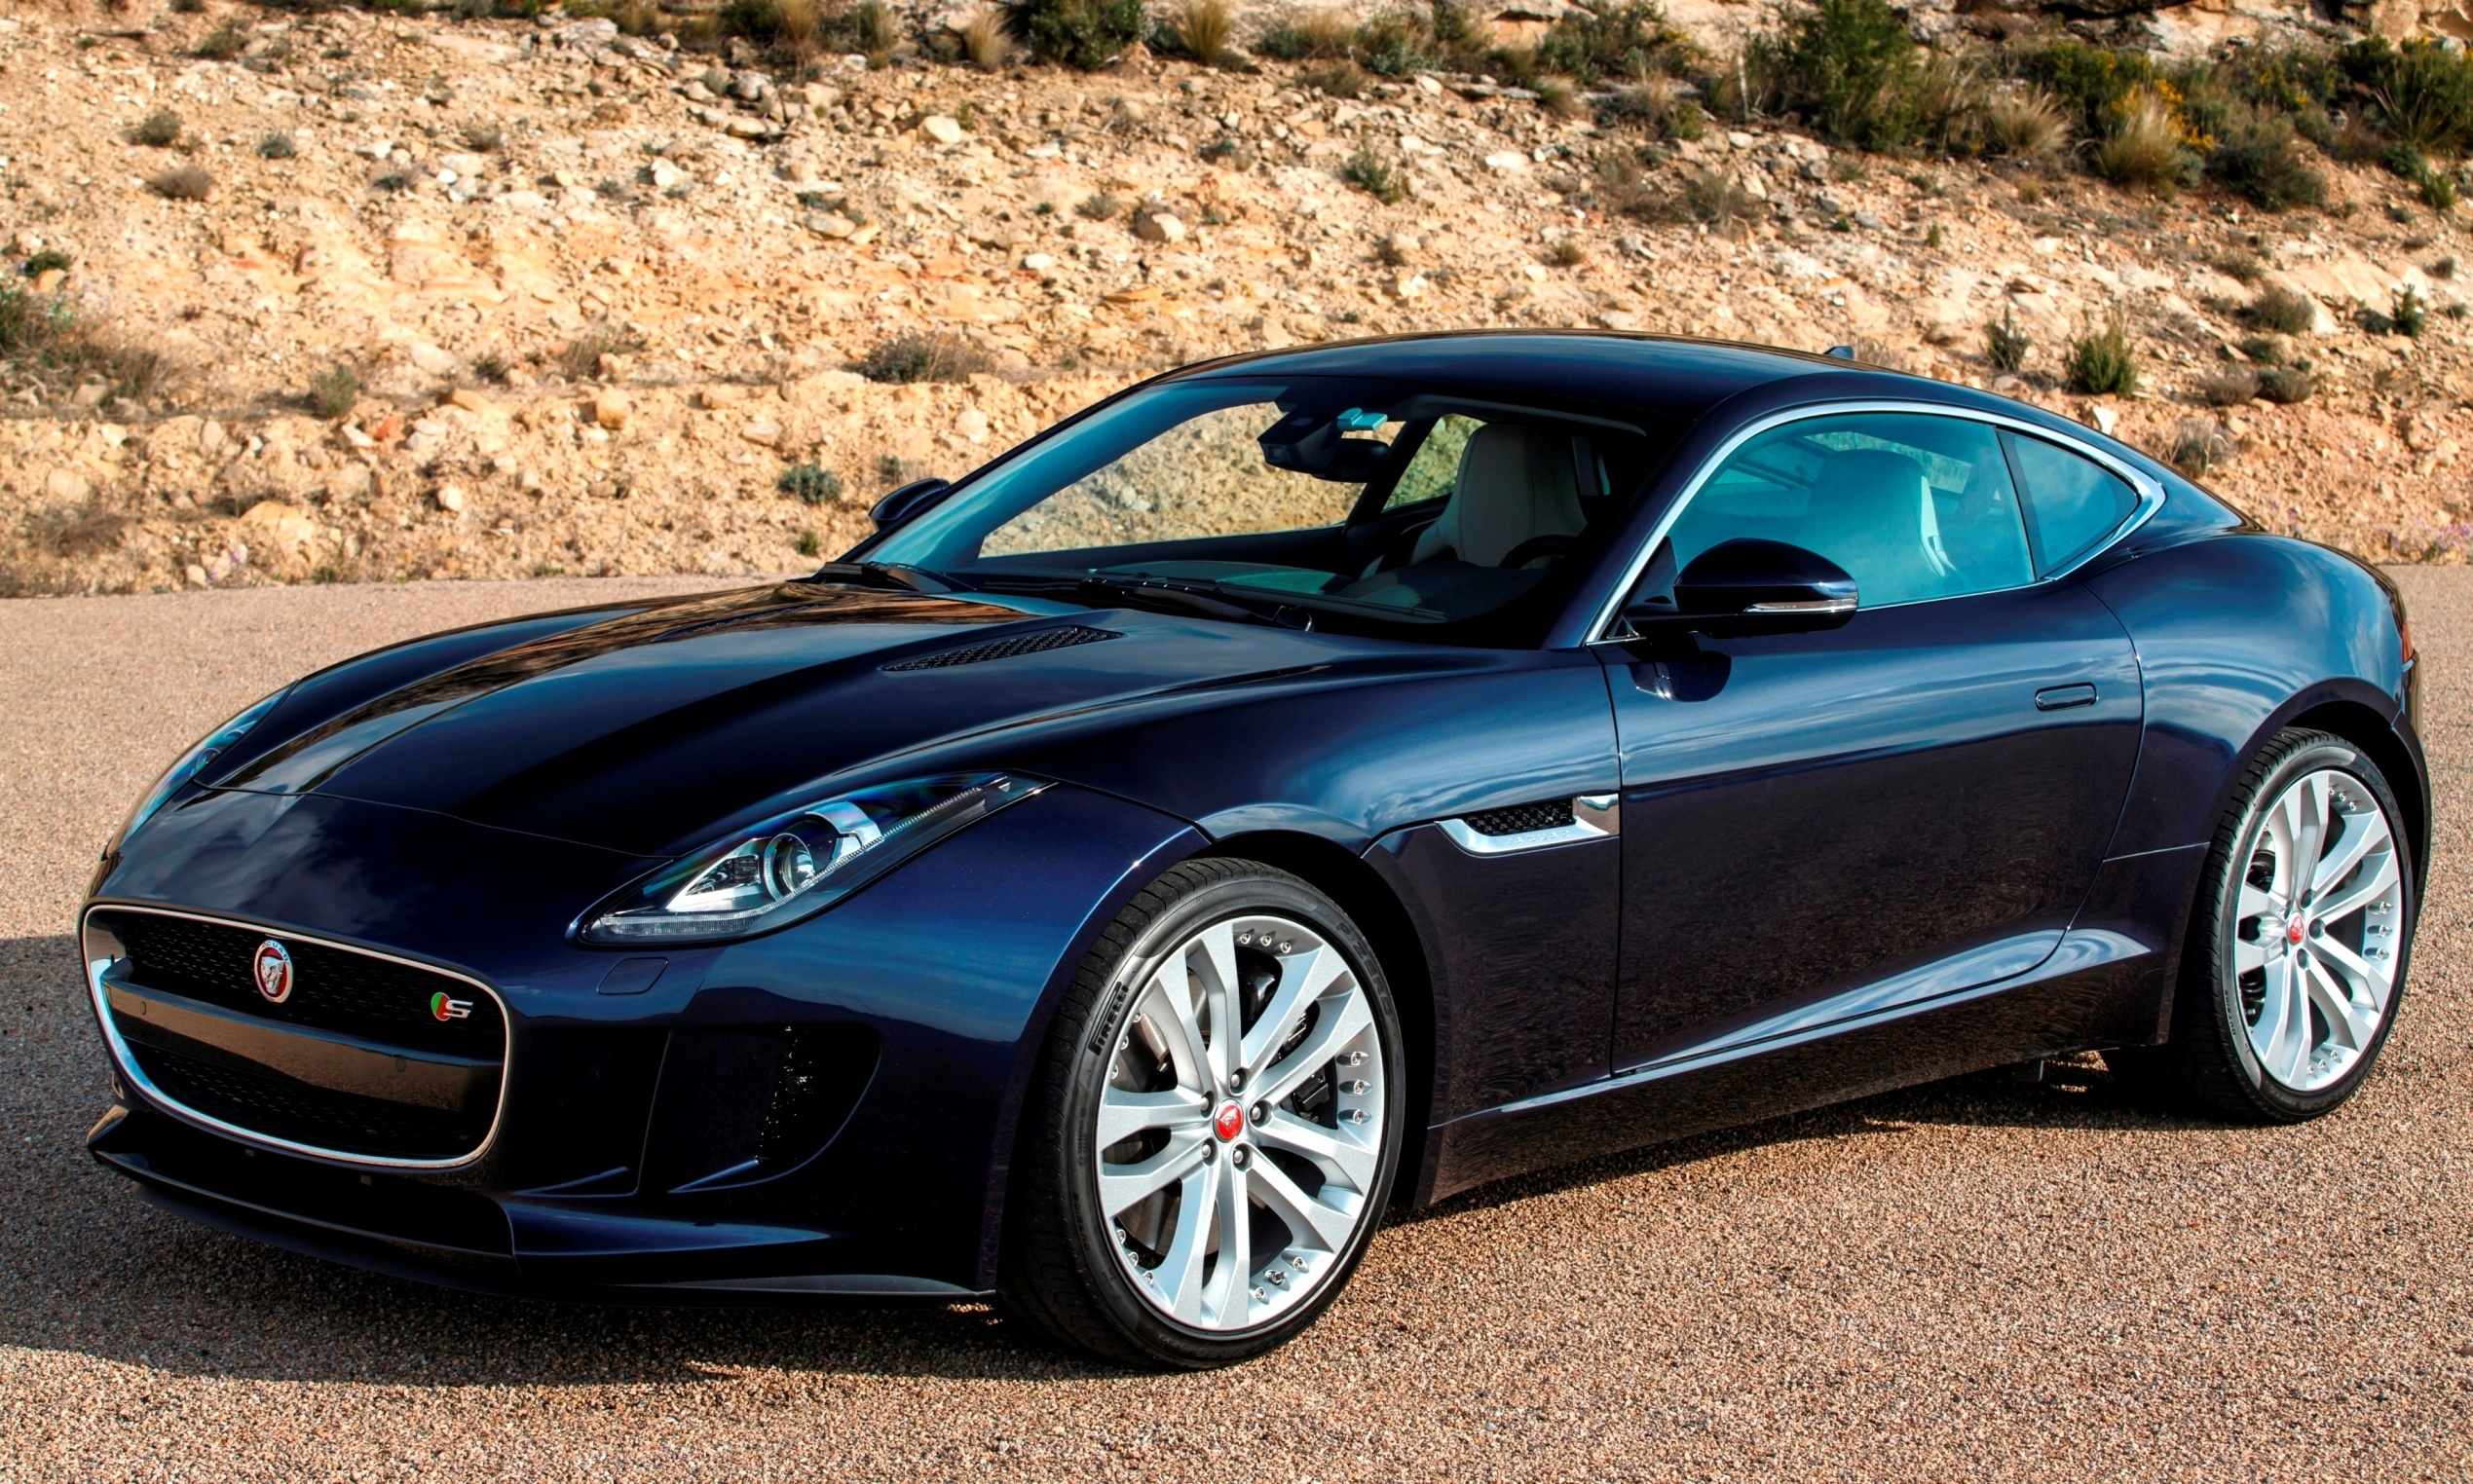 2015 jaguar f type coupe american launch at willow springs. Black Bedroom Furniture Sets. Home Design Ideas